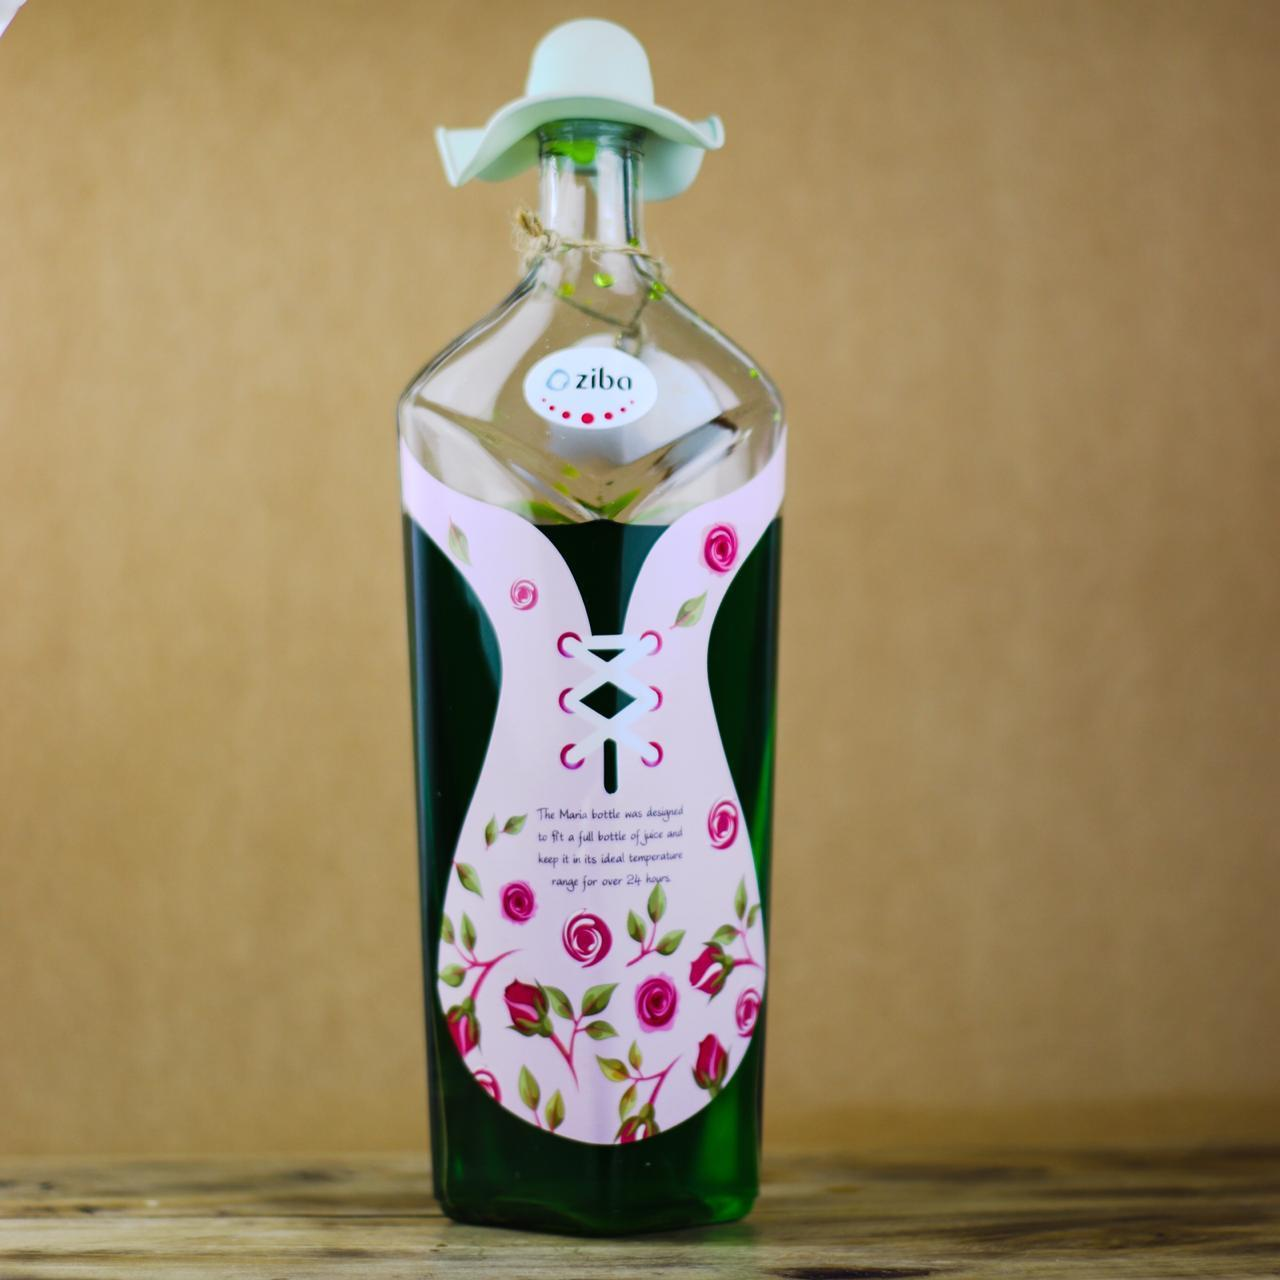 Maria beautician bottle